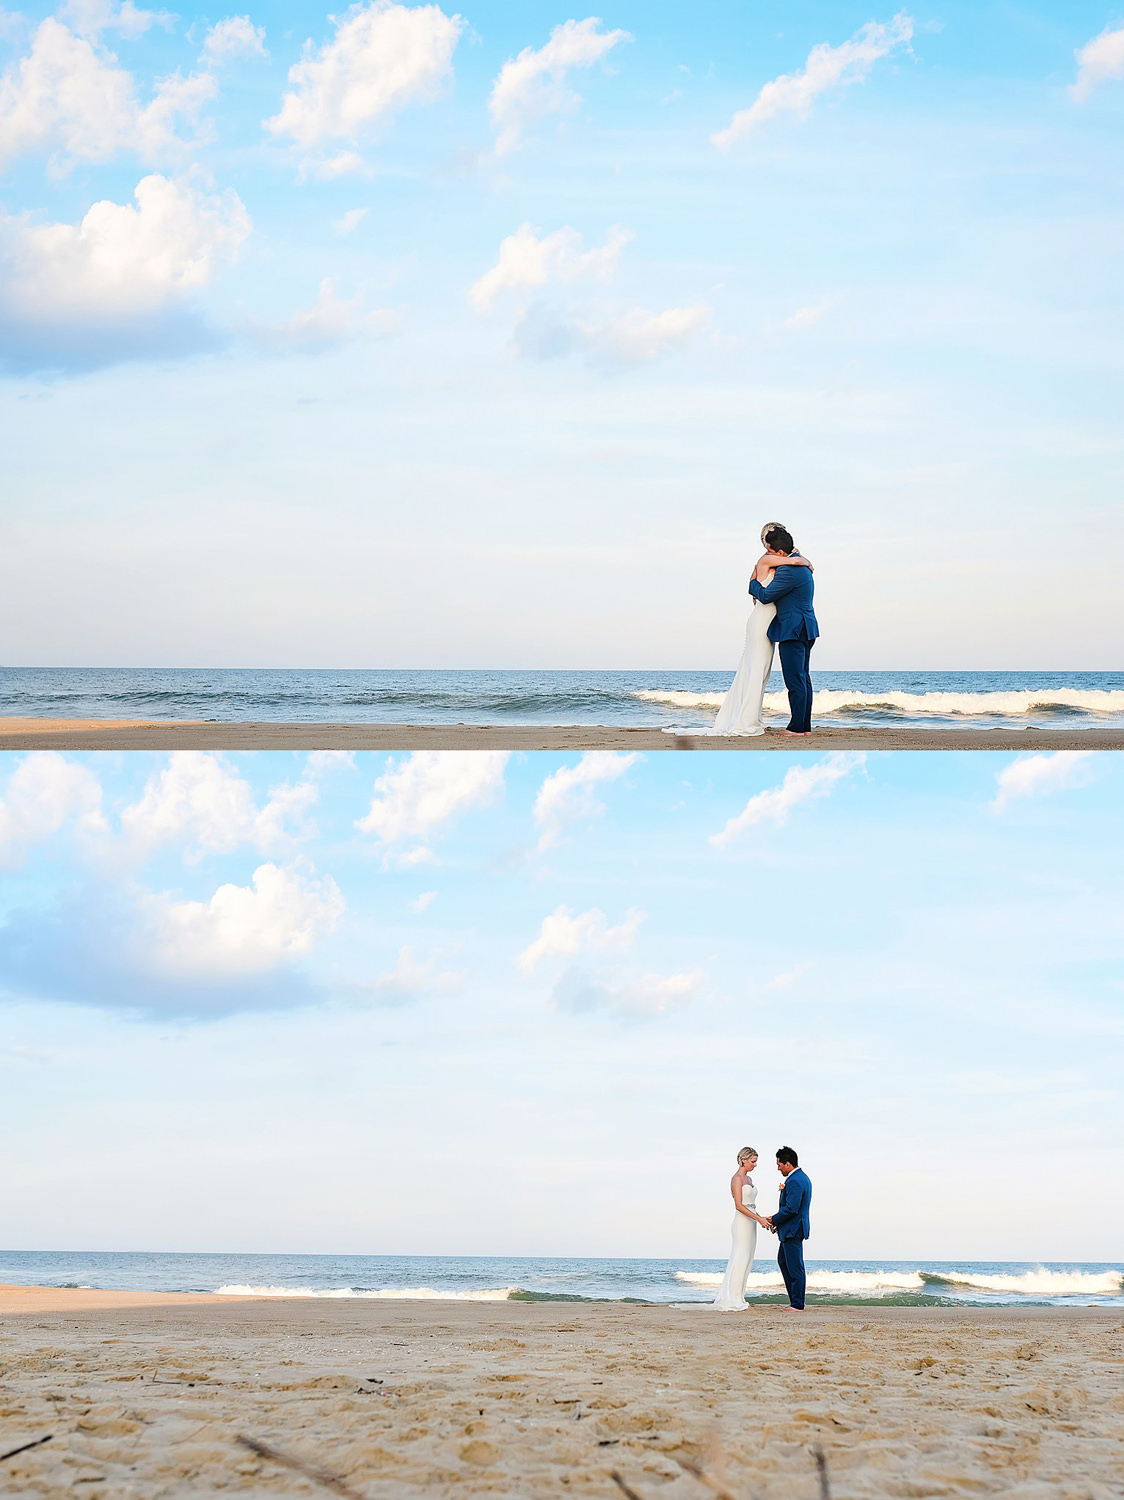 amazing-beach-wedding-photography-by-melissa-bliss-photography-award-winning-VA-photographer.jpg